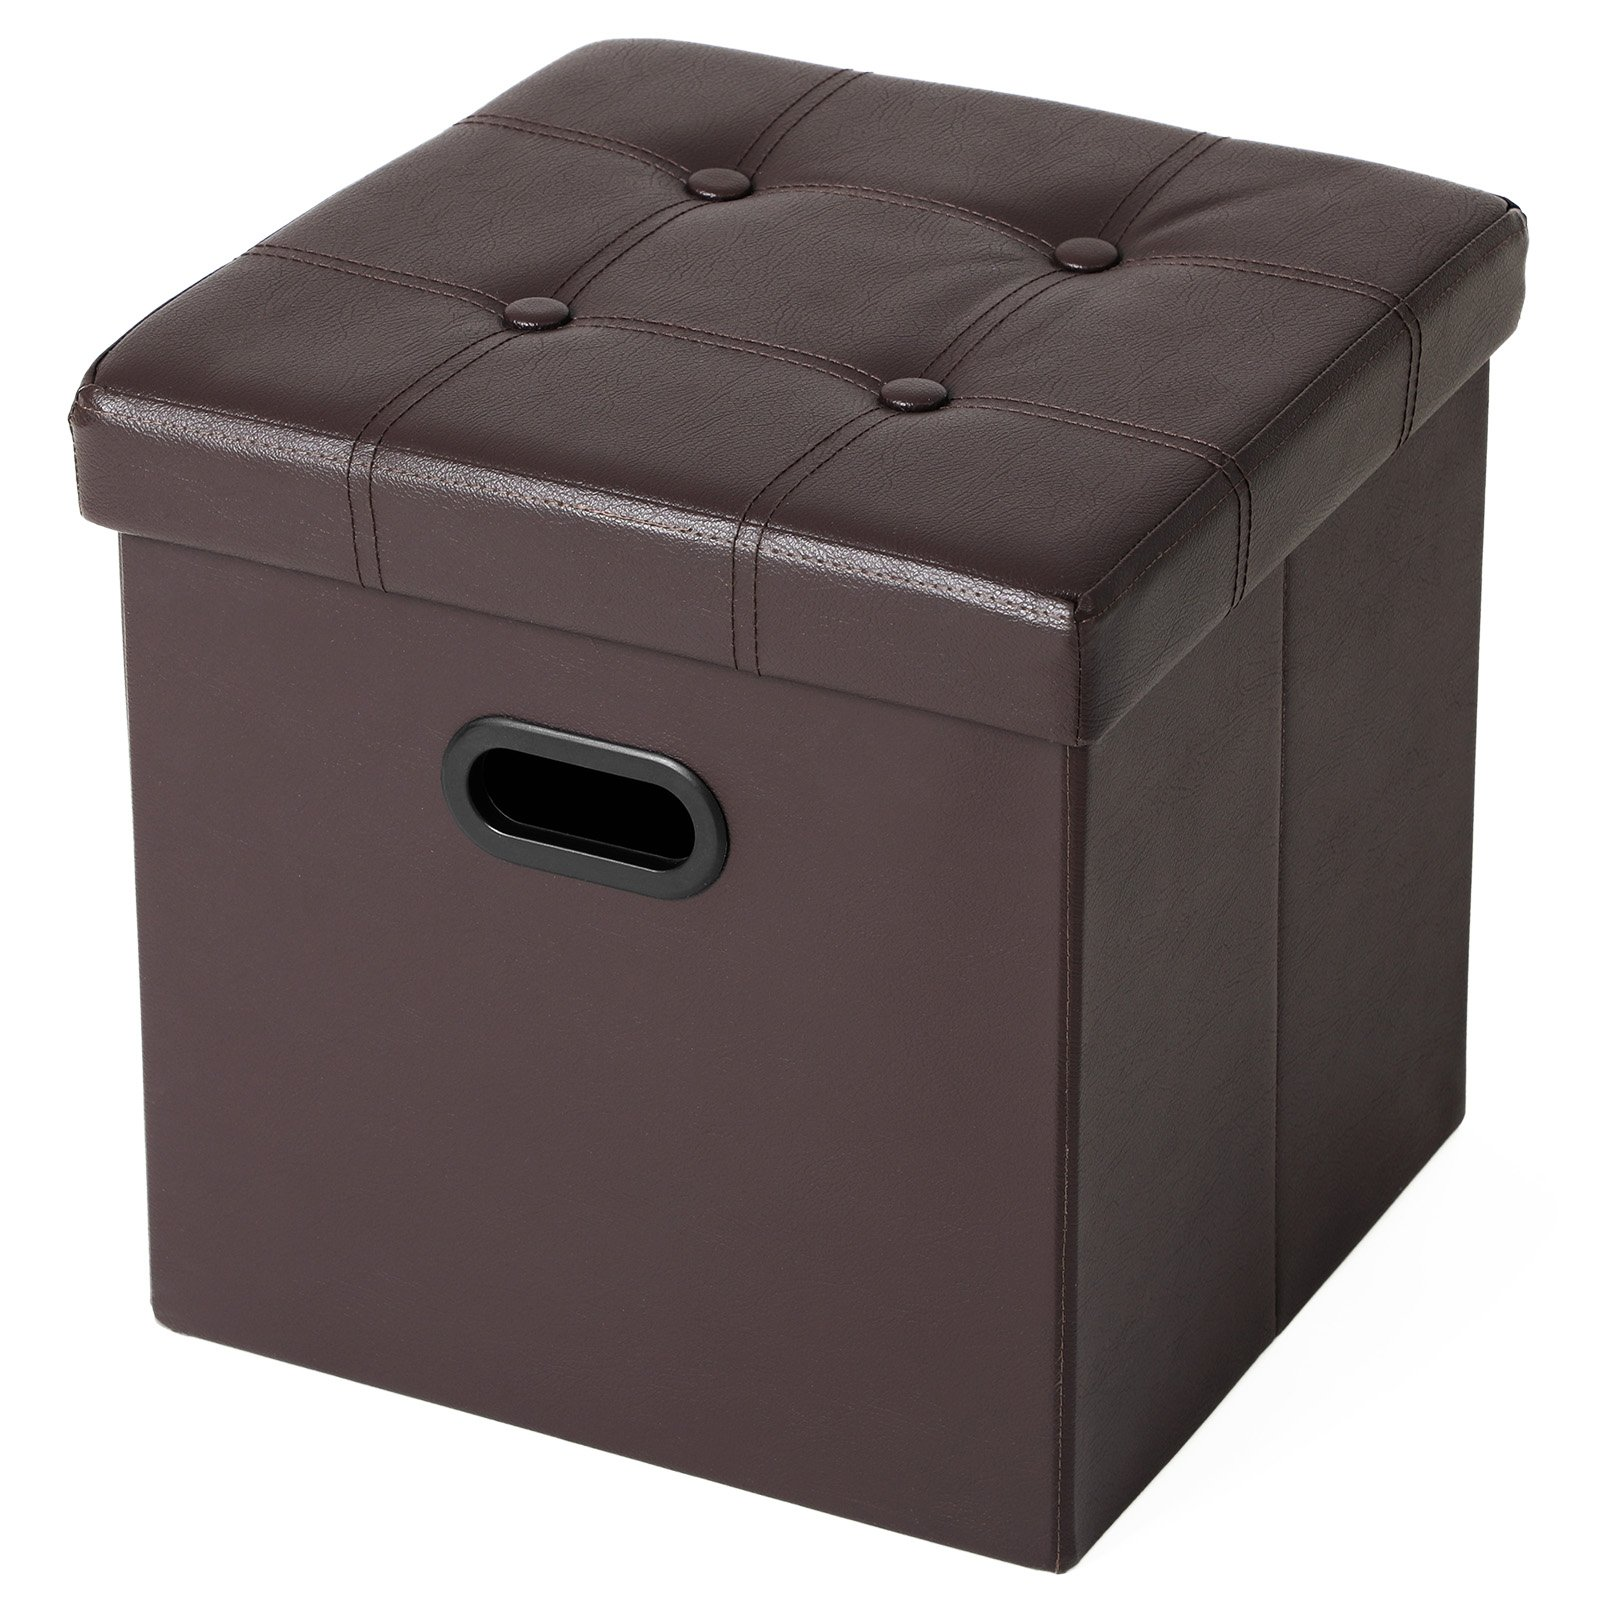 Peachy Best Rated In Ottomans Storage Ottomans Helpful Customer Forskolin Free Trial Chair Design Images Forskolin Free Trialorg